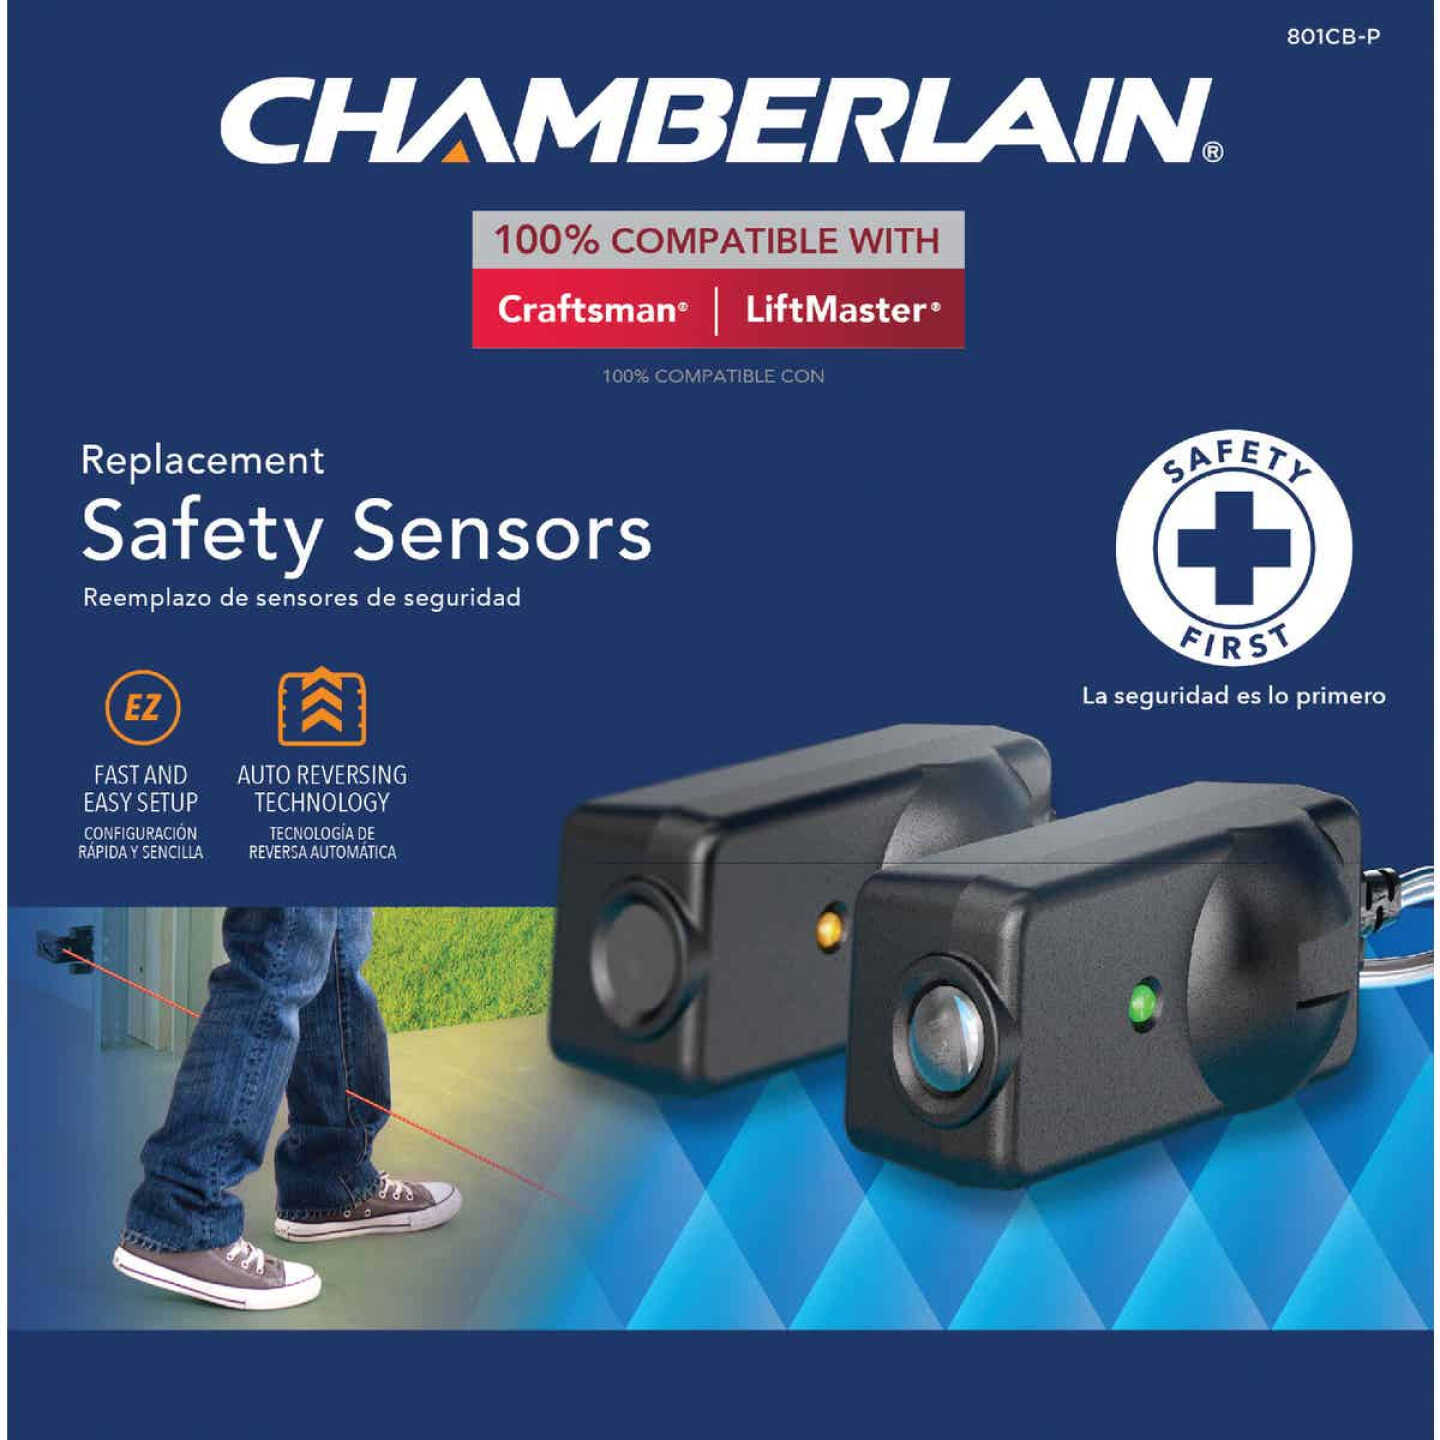 Chamberlain Replacement Safety Sensor (2 Count) Image 1